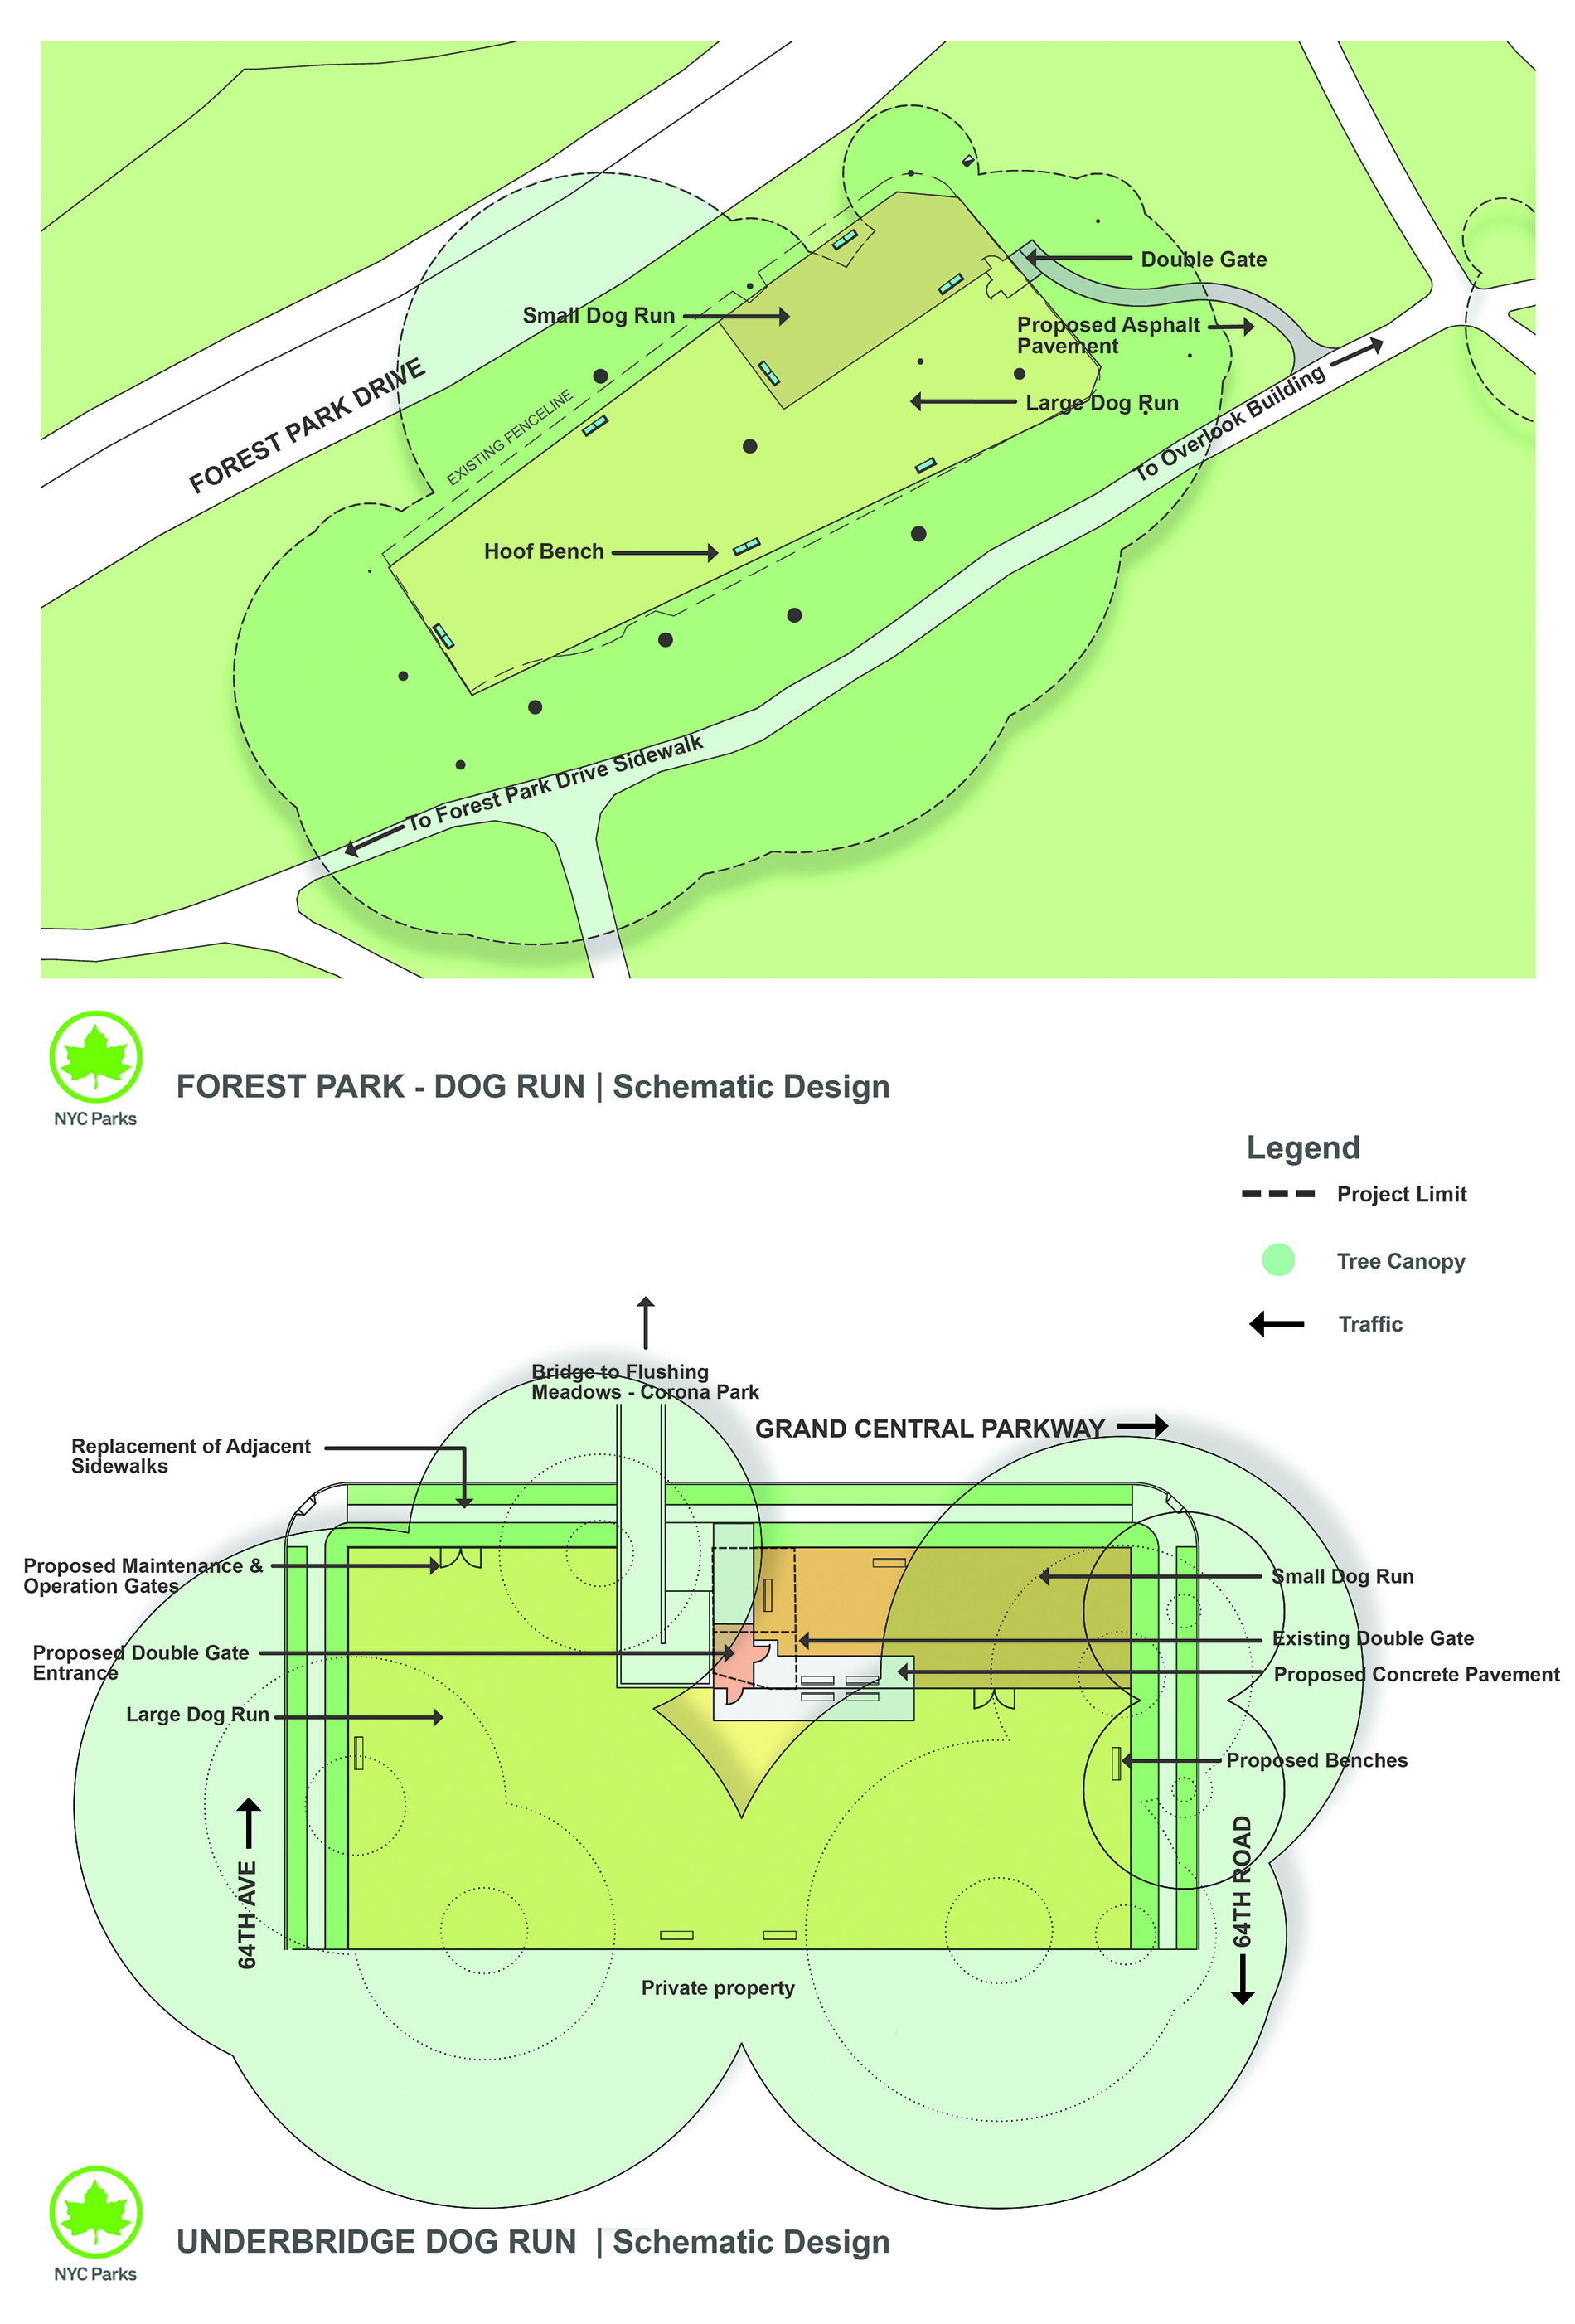 Design of Underbridge Dog Run and Forest Park Overlook Dog Run Fencing Reconstruction